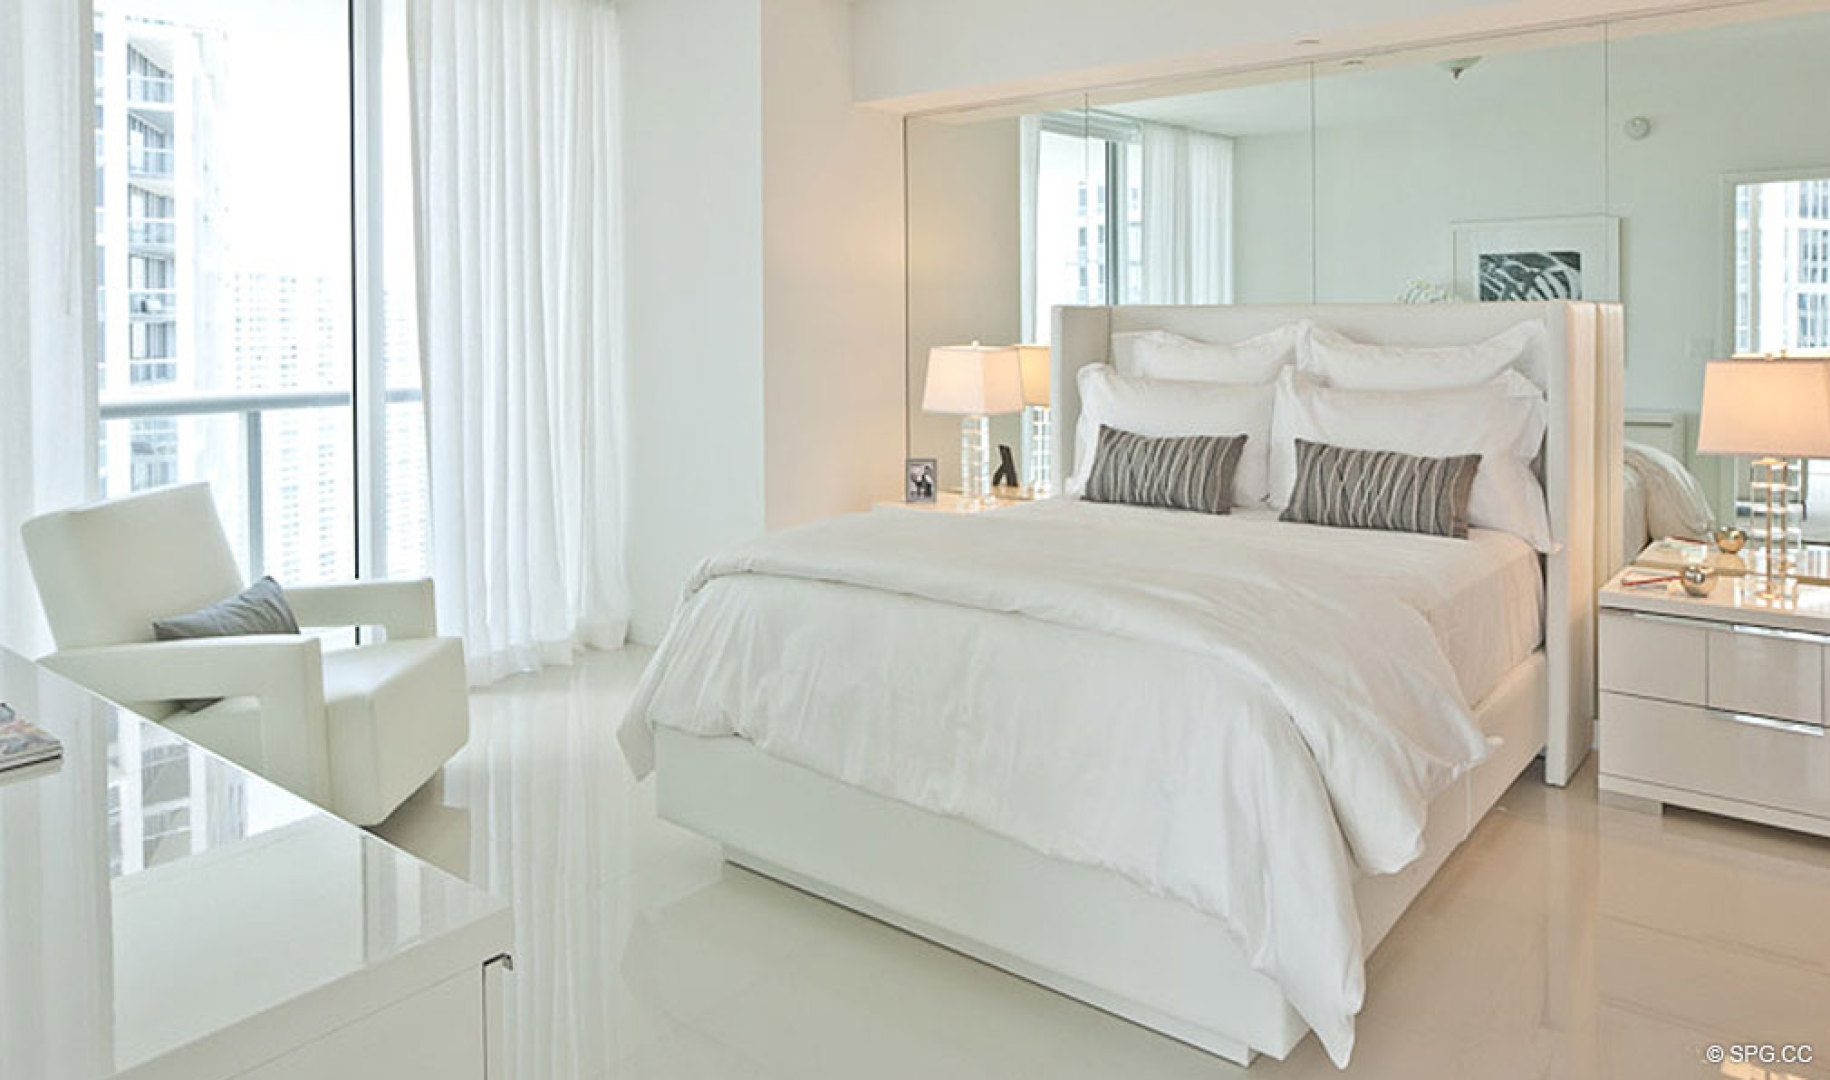 Bedroom Suite at ICON Brickell, Luxury Waterfront Condominiums Located at 475 Brickell Ave, Miami, FL 33131